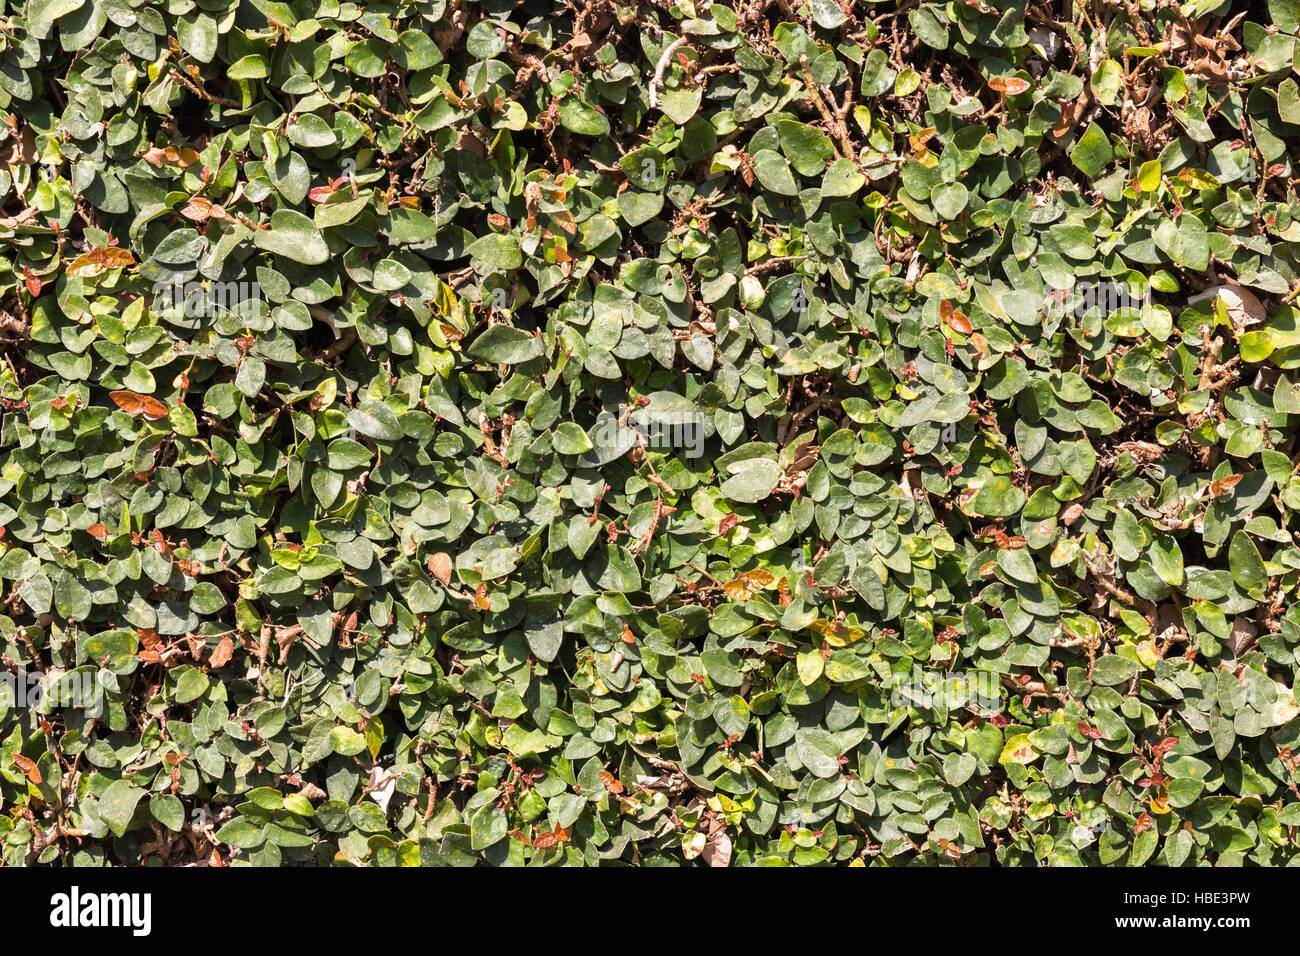 Fence Hedge Small Stockfotos & Fence Hedge Small Bilder - Alamy